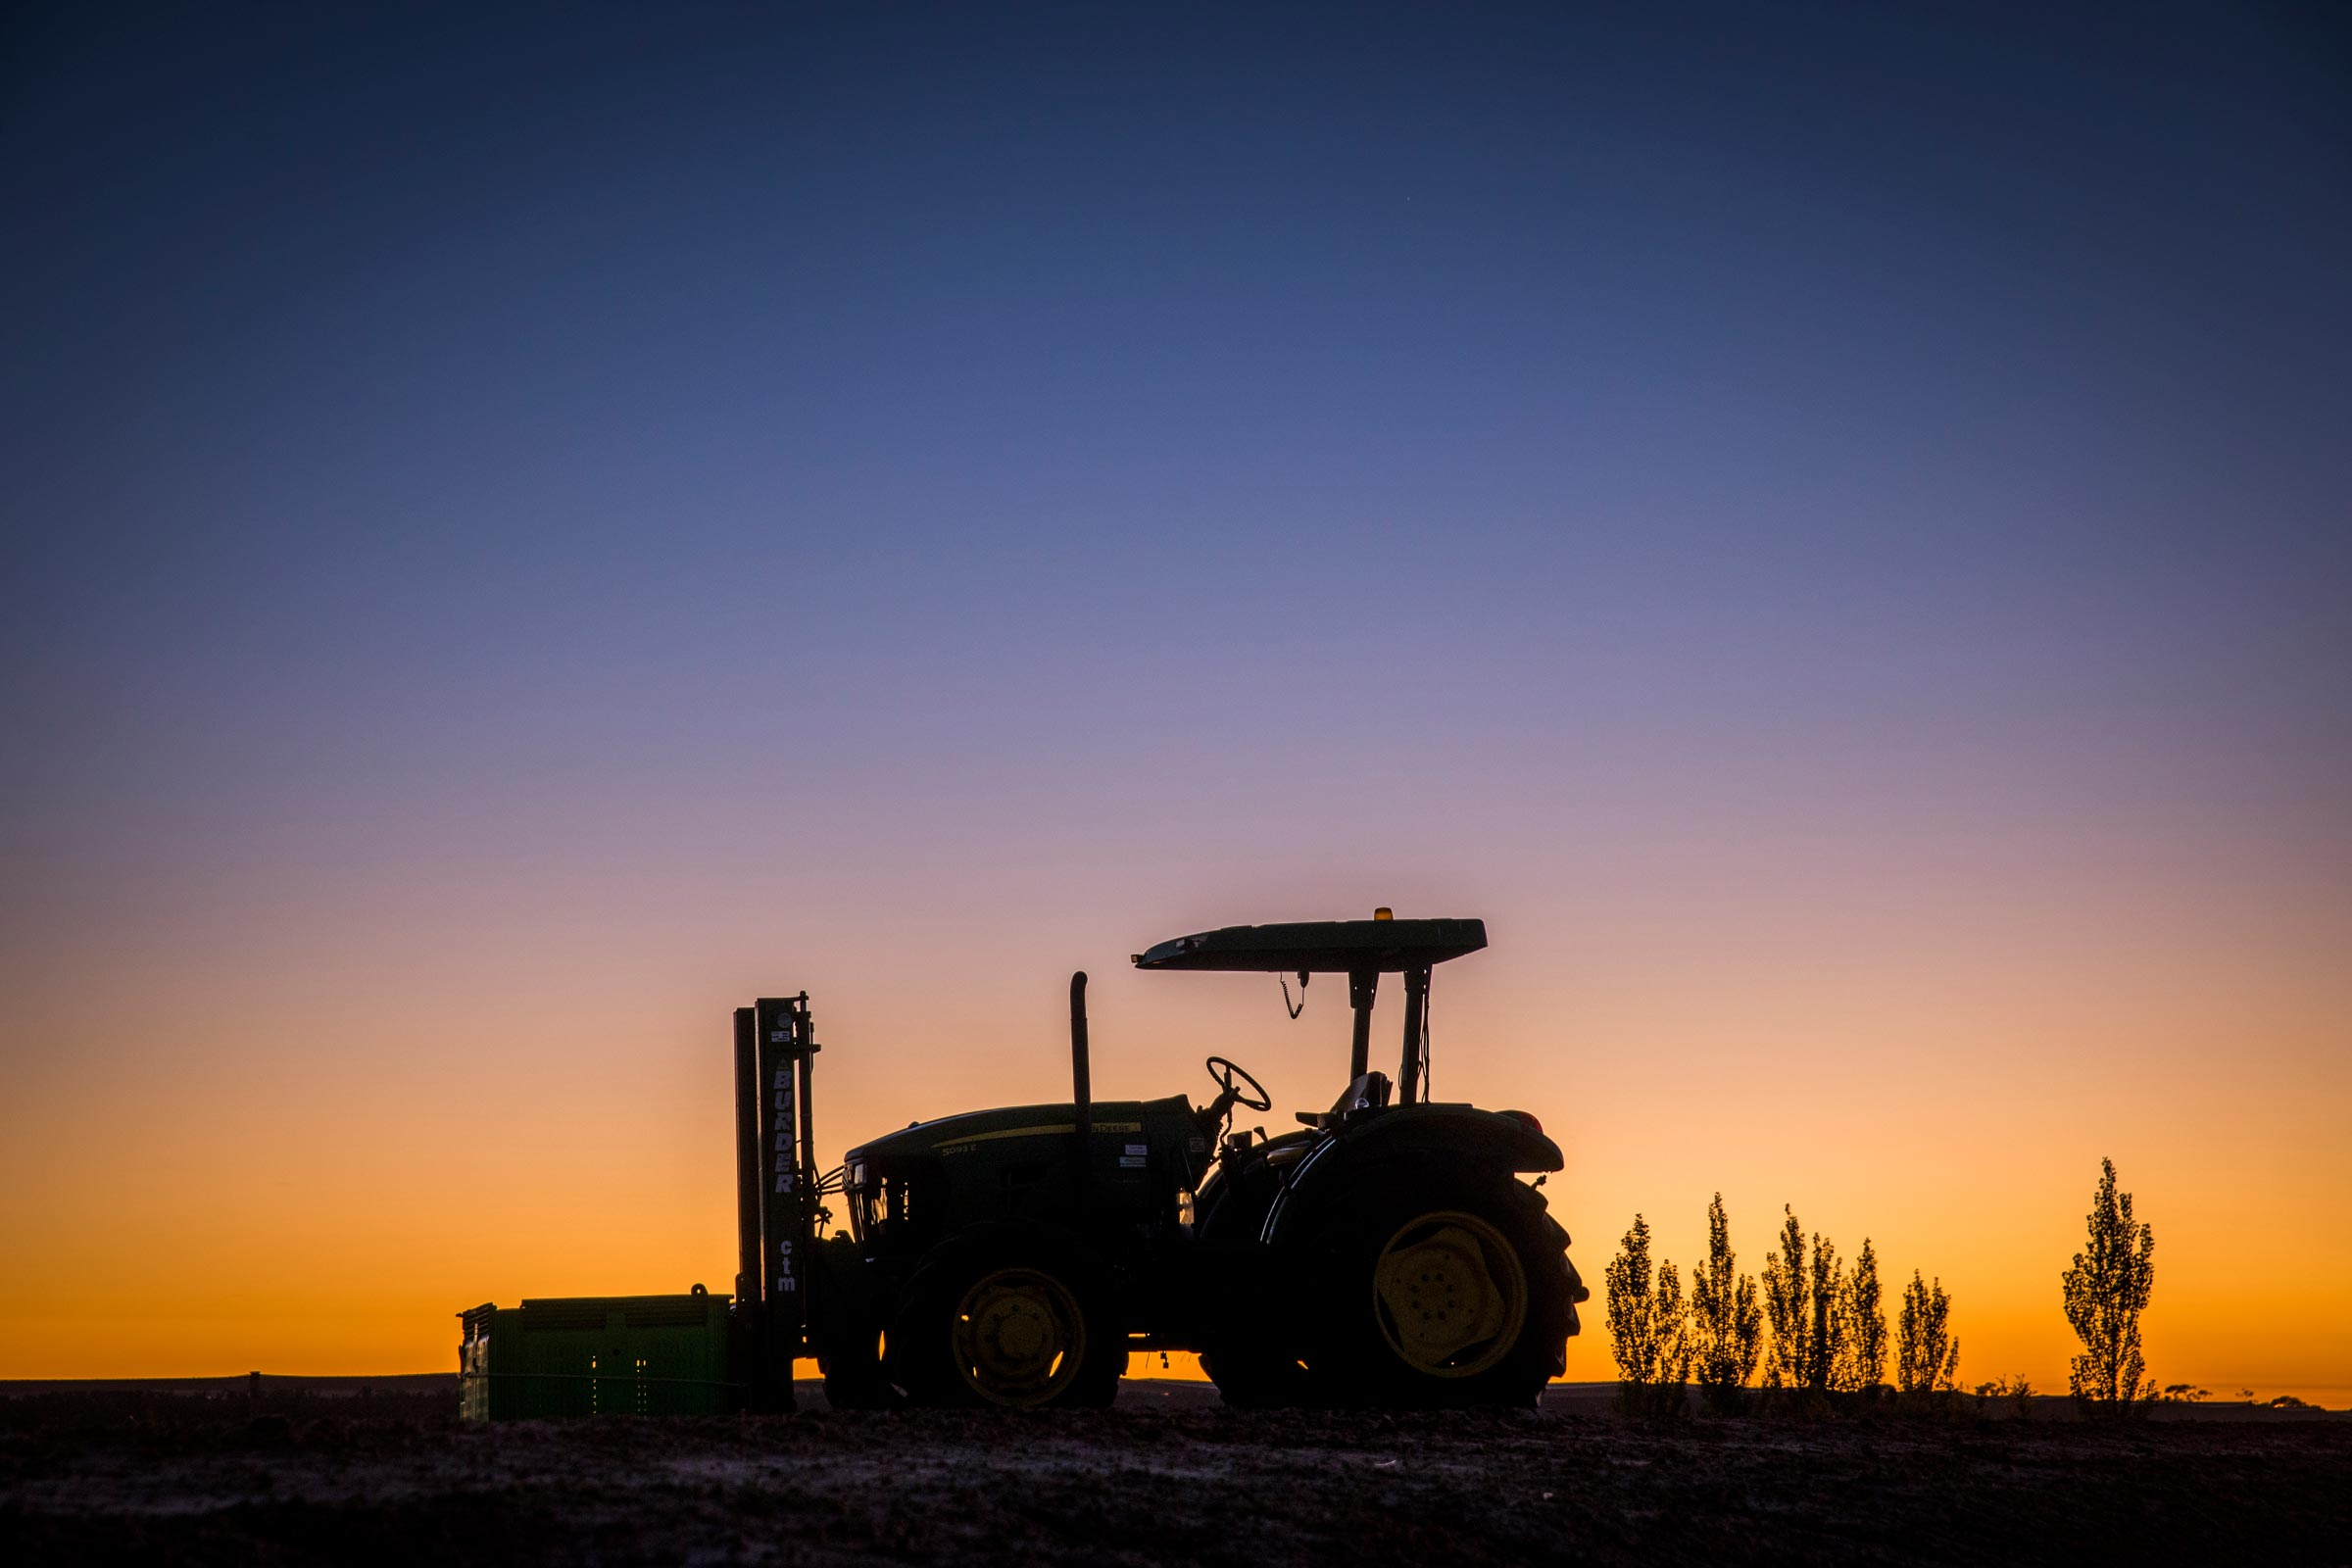 silhouette of tractor on a farm at sunrise